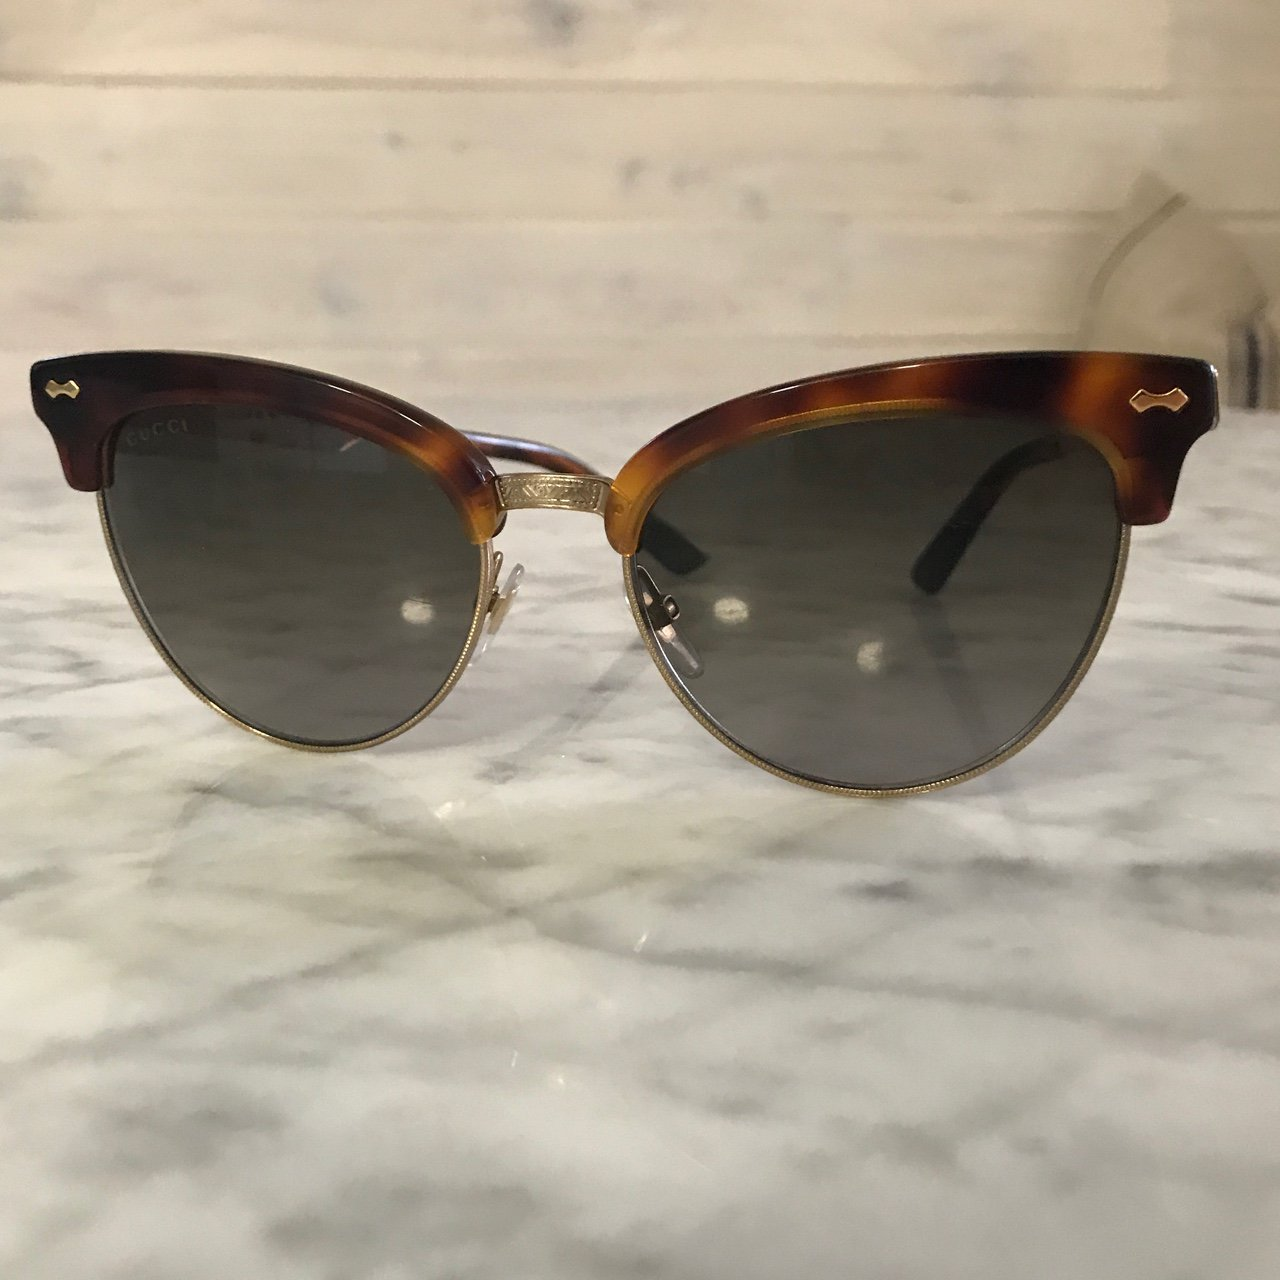 a0198b3ce31 Authentic Gucci cat eye sunglasses. Gold metal engraved with - Depop